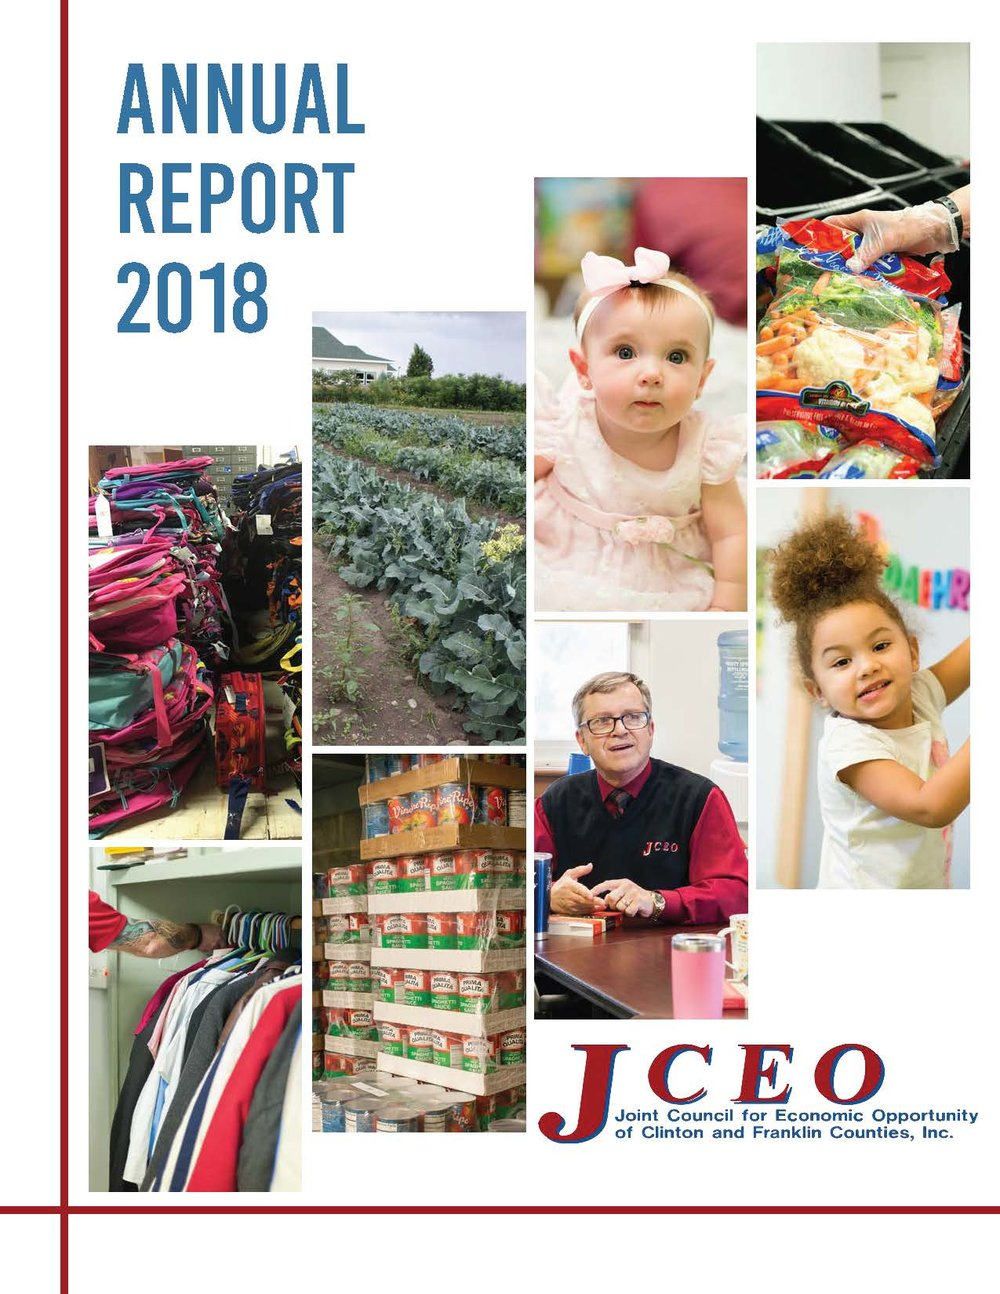 Pages from AnnualReport-2018-V5 Compressed.pdf.jpg